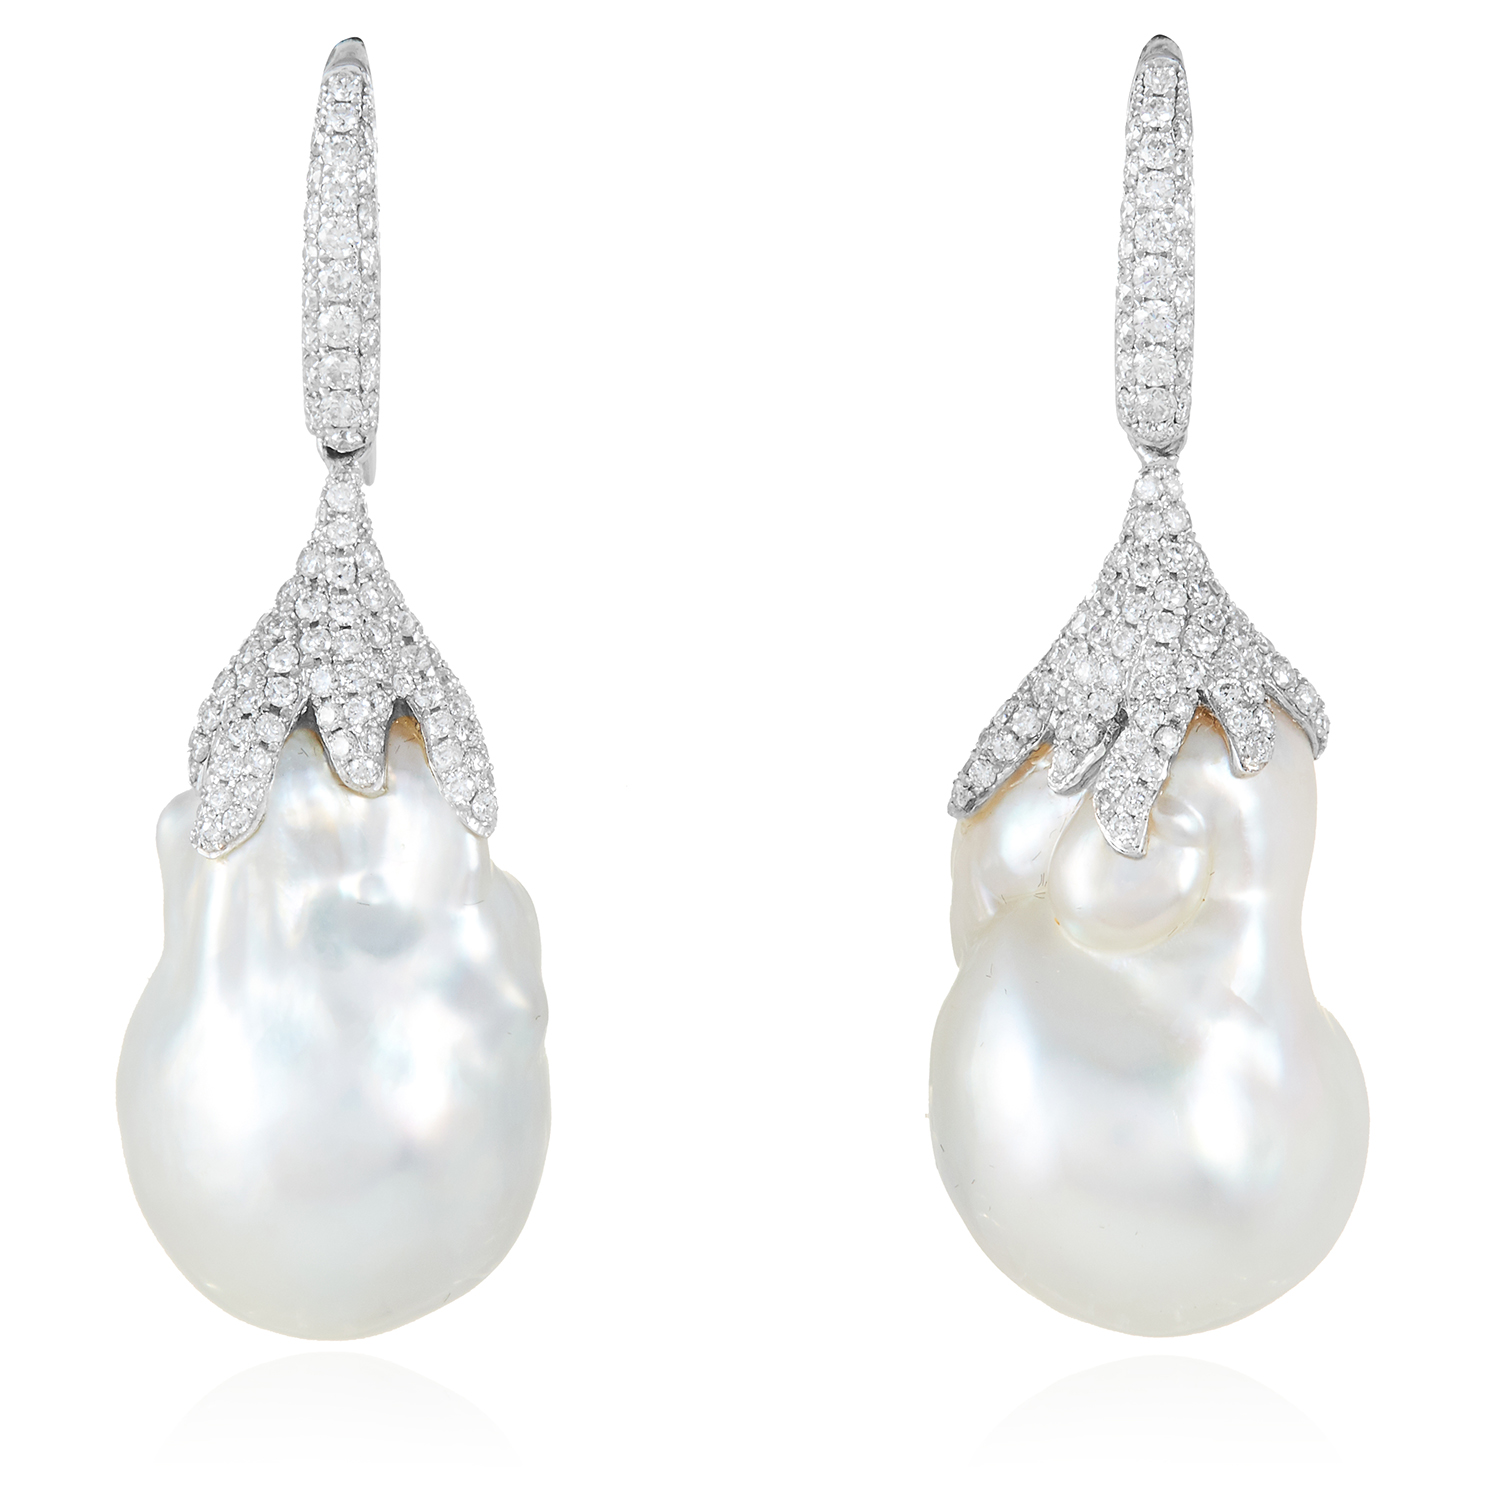 A PAIR OF BAROQUE PEARL AND DIAMOND EARRINGS in 18ct white gold, each set with a large baroque pearl